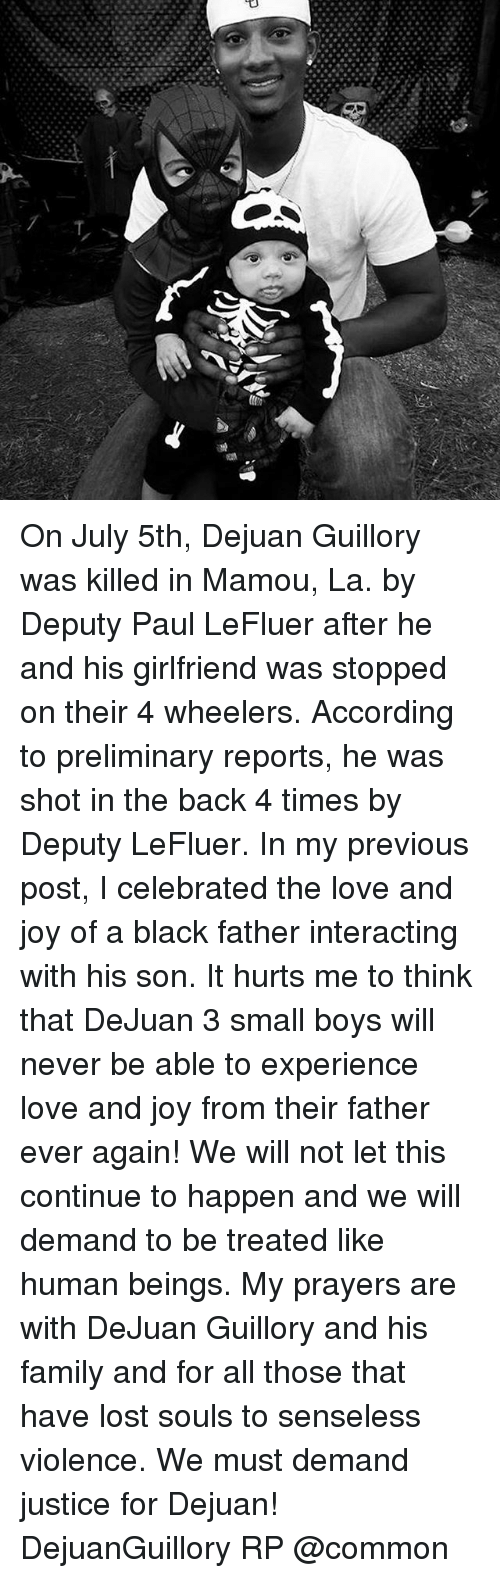 Family, Love, and Memes: On July 5th, Dejuan Guillory was killed in Mamou, La. by Deputy Paul LeFluer after he and his girlfriend was stopped on their 4 wheelers. According to preliminary reports, he was shot in the back 4 times by Deputy LeFluer. In my previous post, I celebrated the love and joy of a black father interacting with his son. It hurts me to think that DeJuan 3 small boys will never be able to experience love and joy from their father ever again! We will not let this continue to happen and we will demand to be treated like human beings. My prayers are with DeJuan Guillory and his family and for all those that have lost souls to senseless violence. We must demand justice for Dejuan! DejuanGuillory RP @common